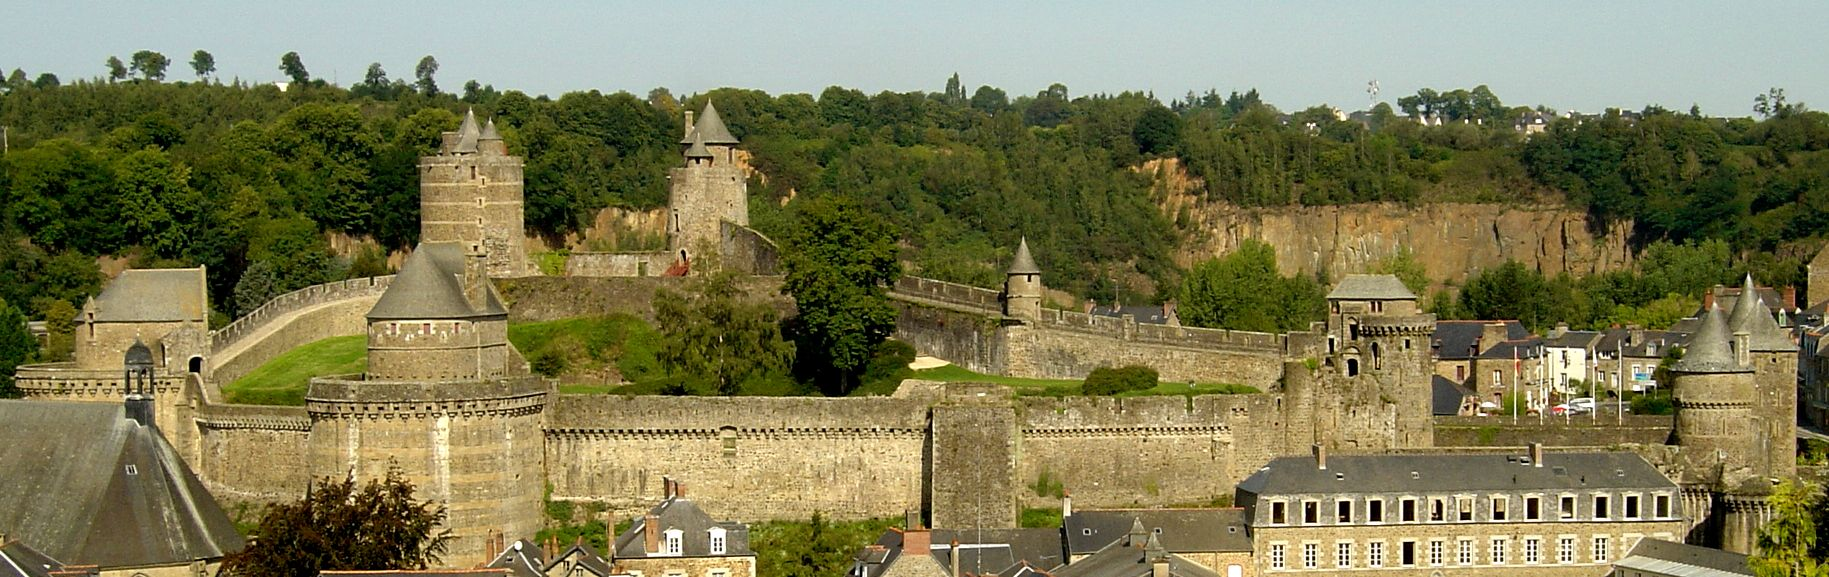 General view of the castle of Fougeres.